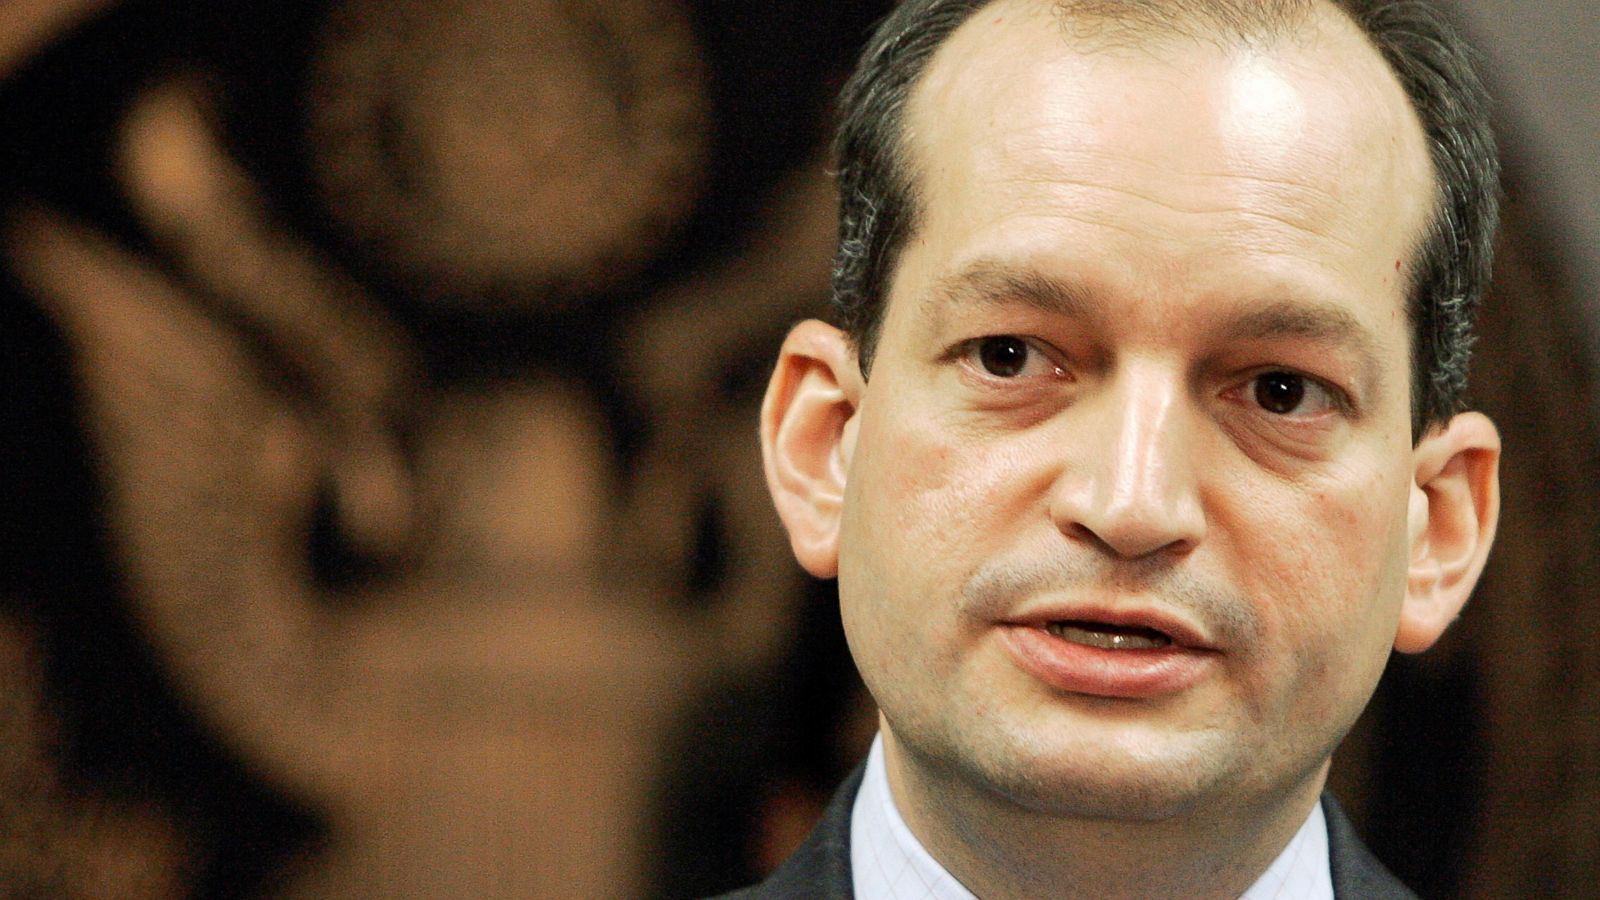 Image result for photos Alexander Acosta